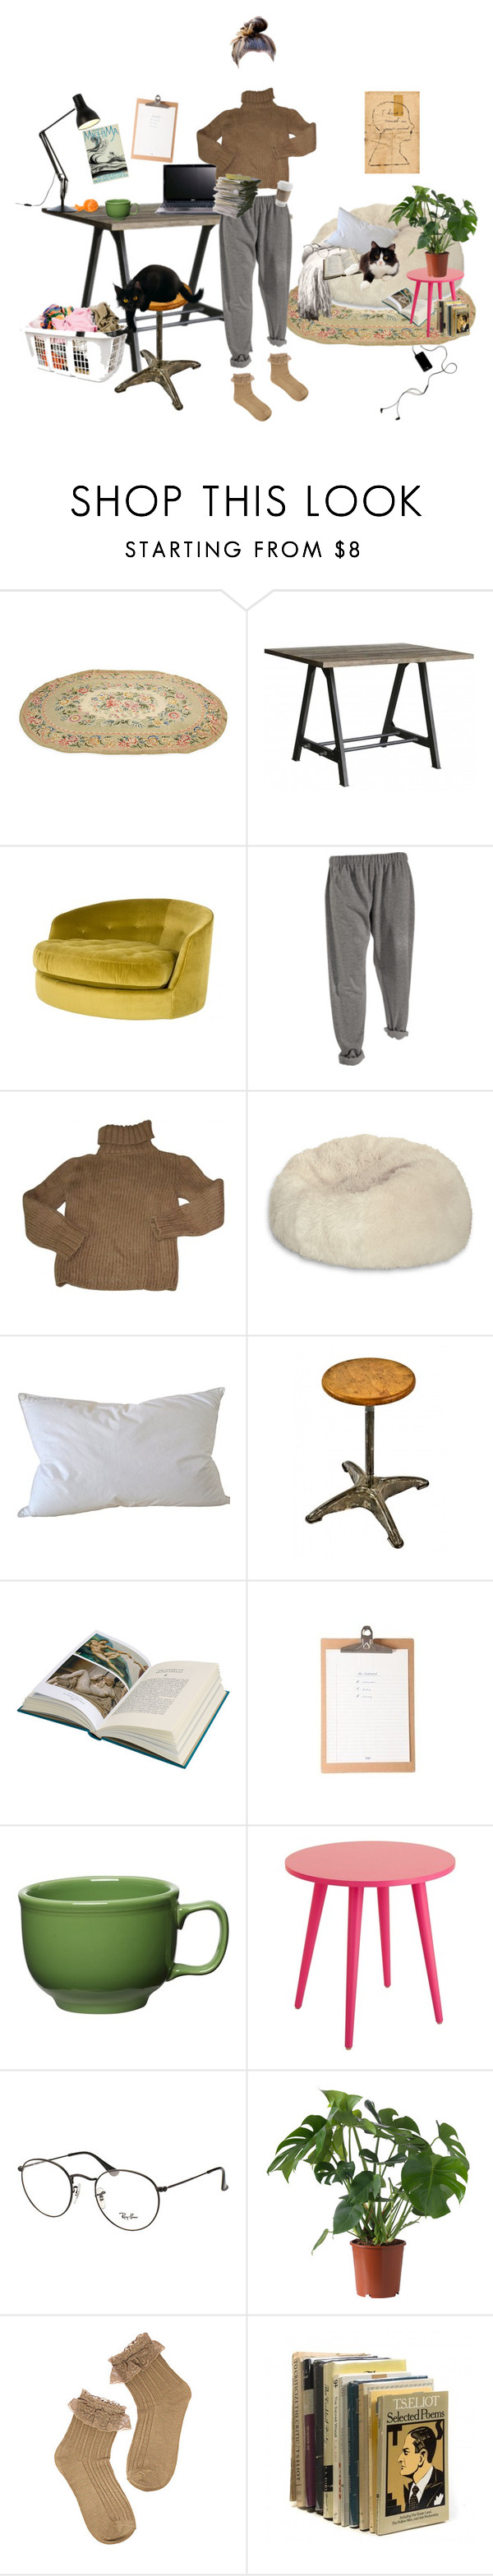 """This semester is killing me"" by ohyou ❤ liked on Polyvore featuring Jayson Home, Acer, Isabel Marant, Pure Rugs, Natural Comfort, American Vintage, Fiesta, Ray-Ban and Anglepoise"